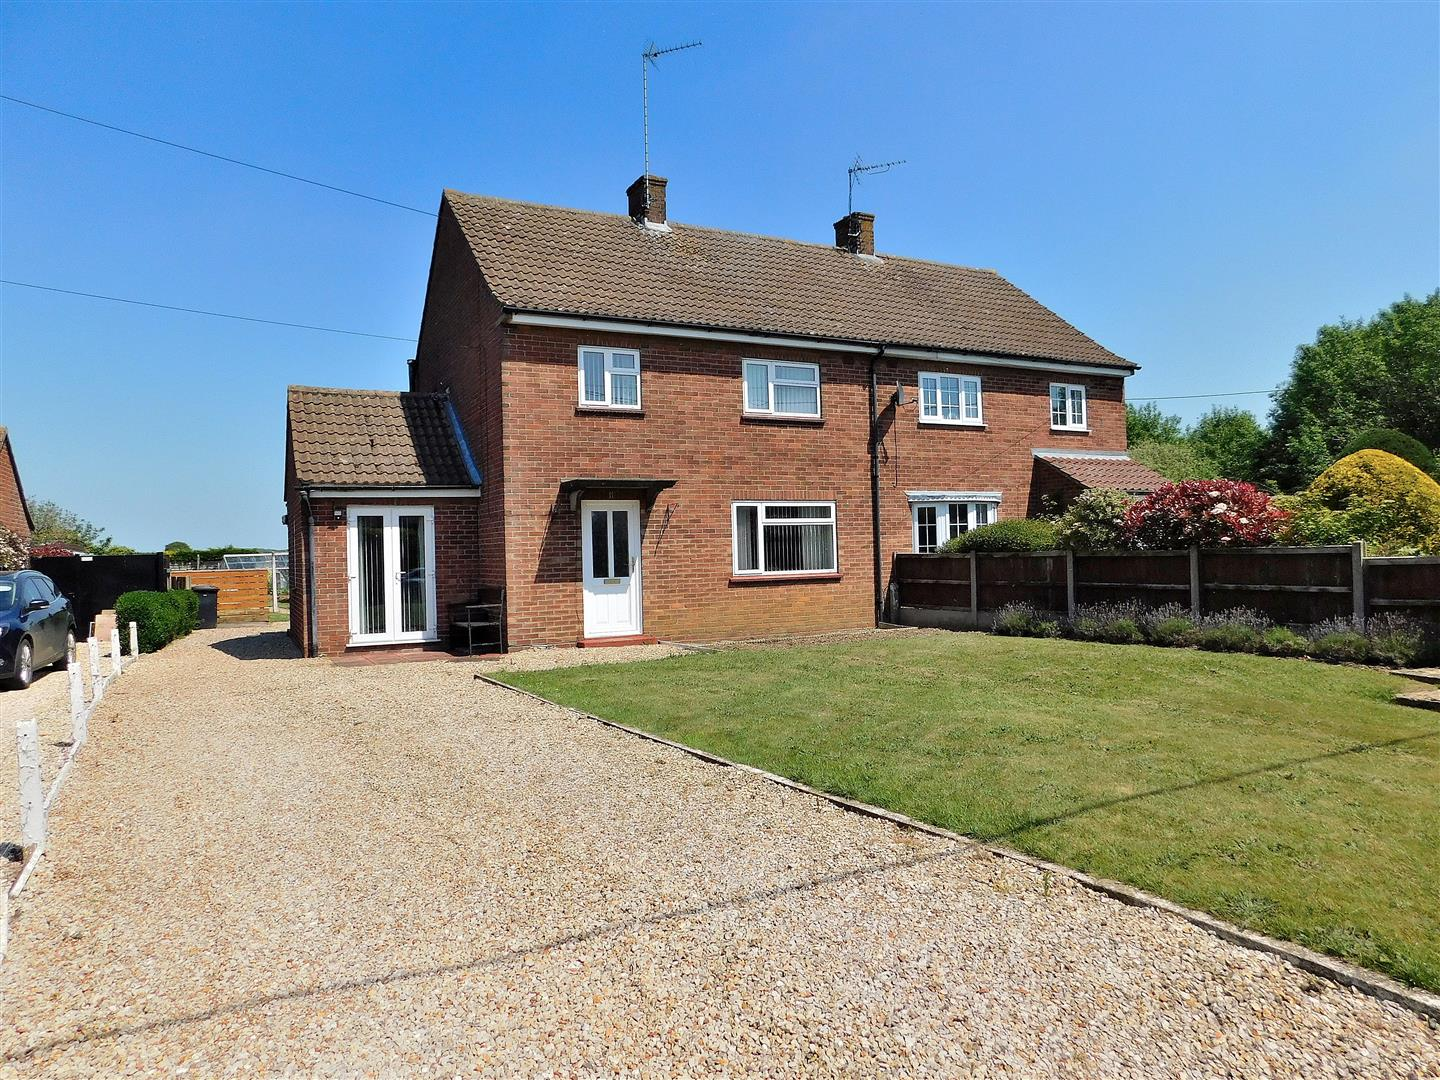 3 bed semi-detached house for sale in Stocks Close, King's Lynn, PE31